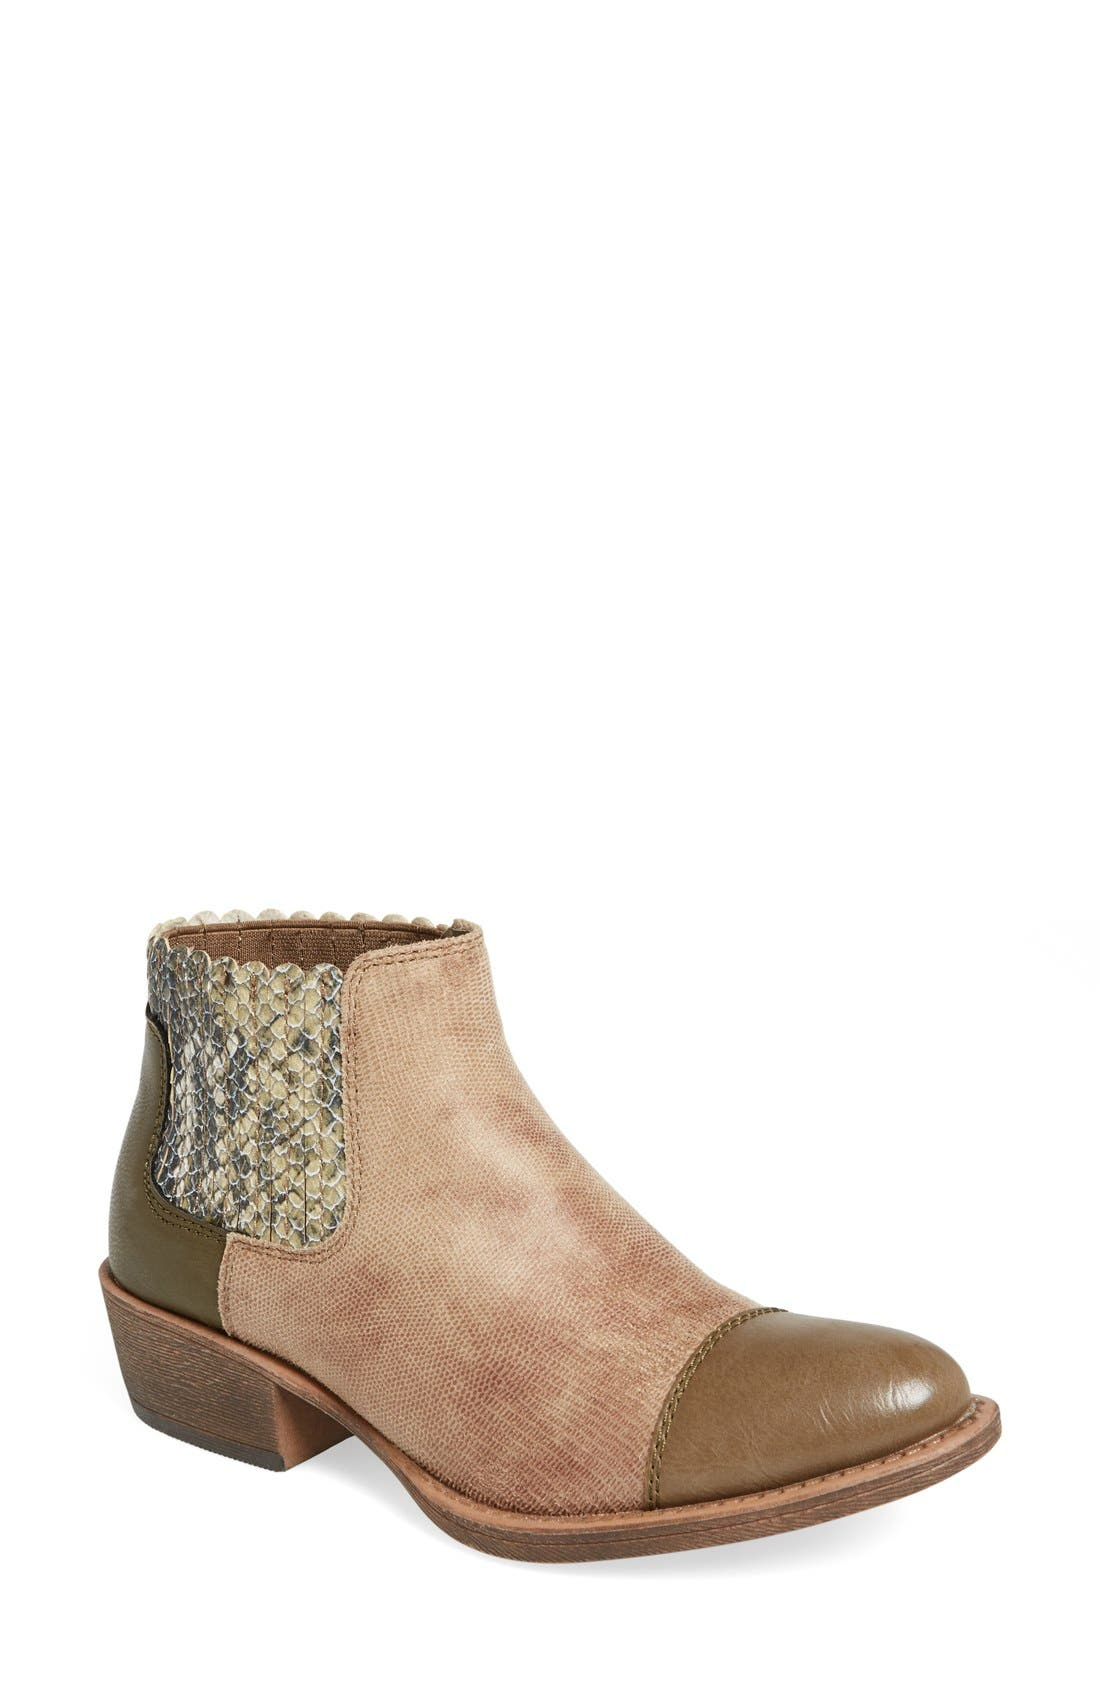 Main Image - Coconuts by Matisse 'Blackjack' Ankle Boot (Women)